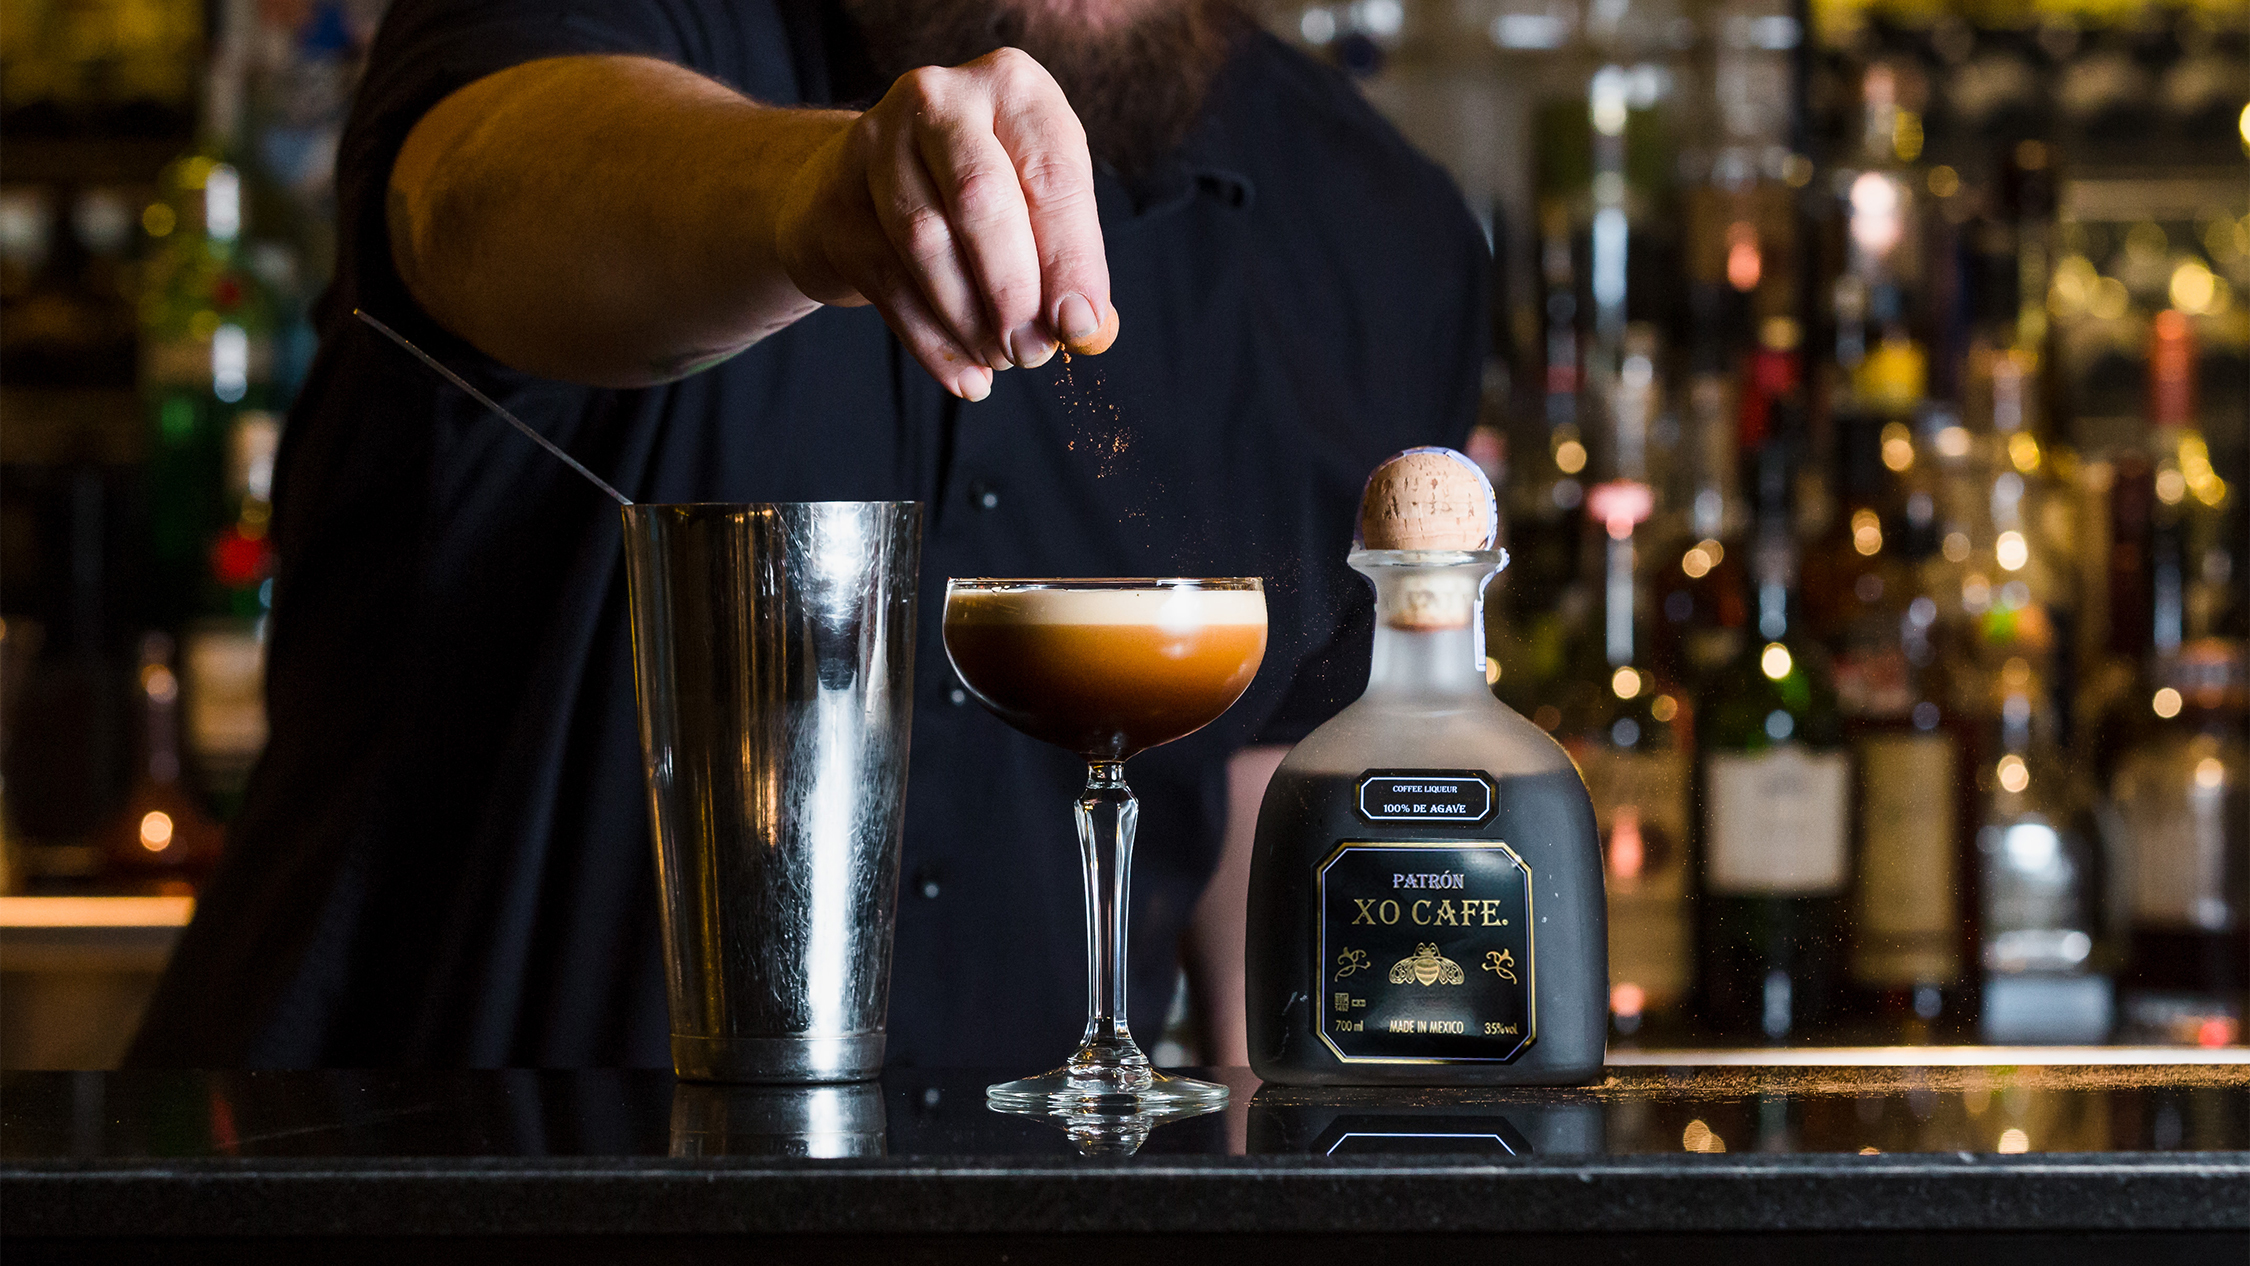 Vote for the bar making your favourite Patrón XO Café Espresso Martini and win a $200 bar tab